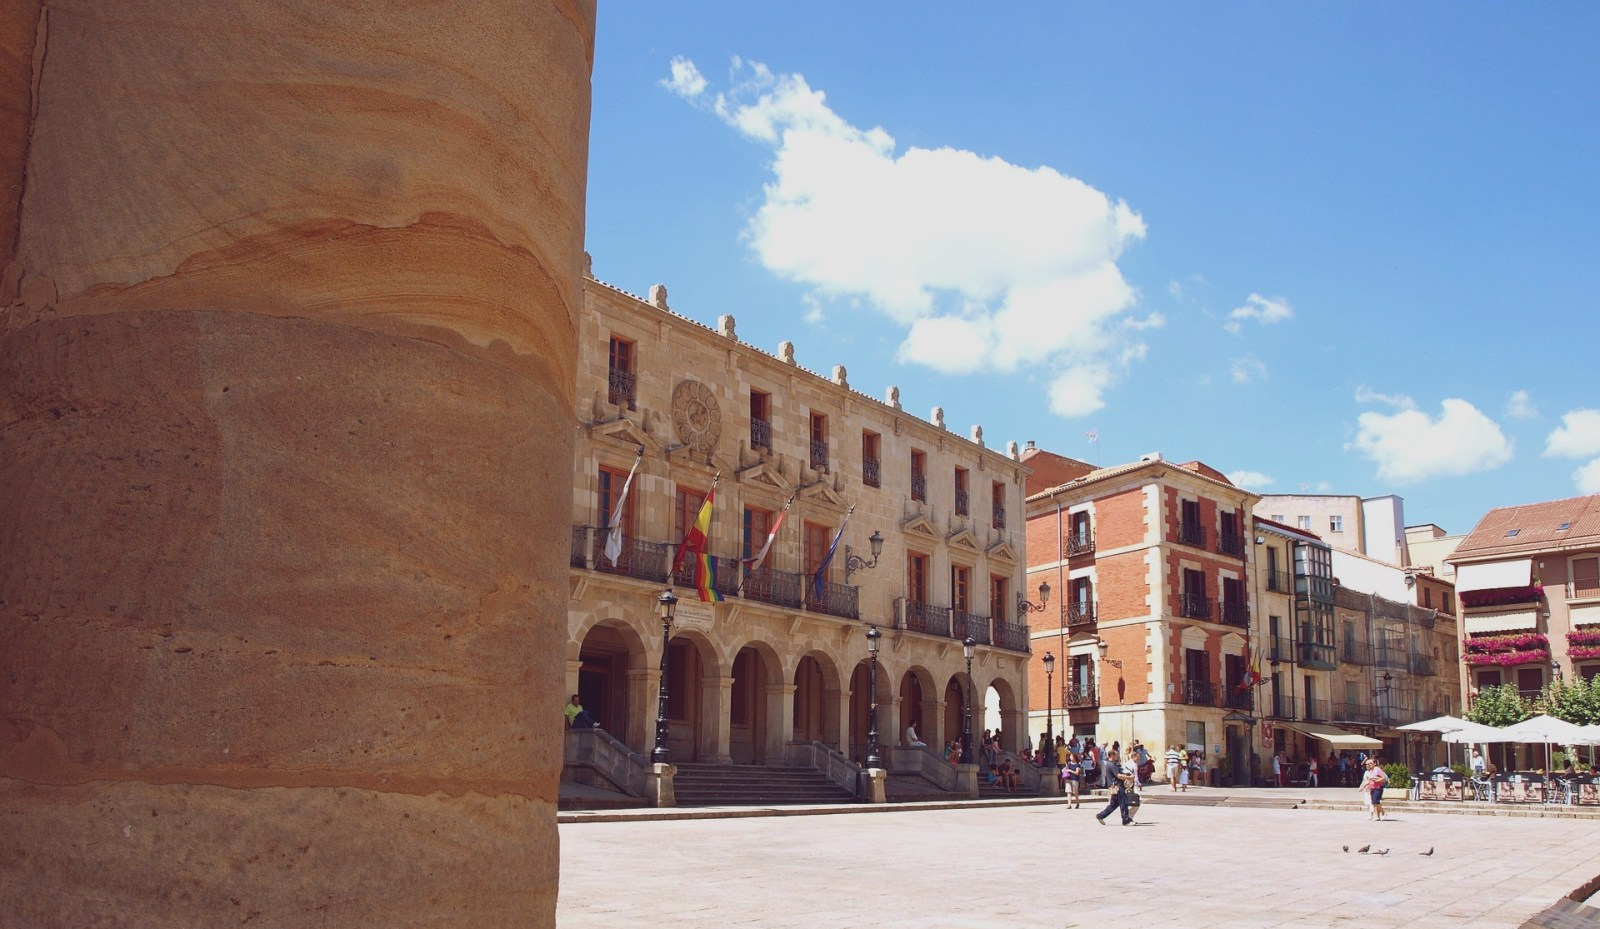 The Best Areas to Stay in Soria, Spain